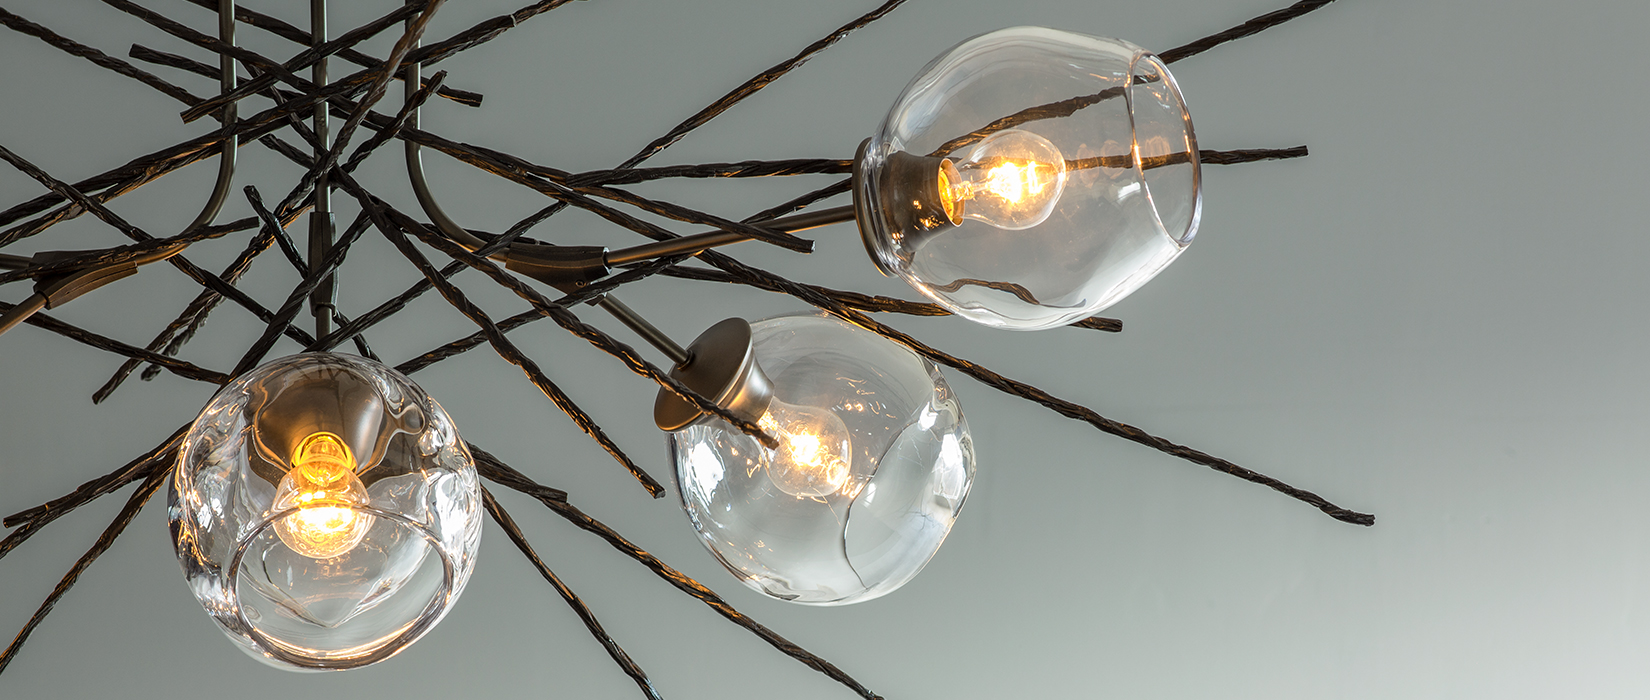 artisans in vt come together hubbardton forge